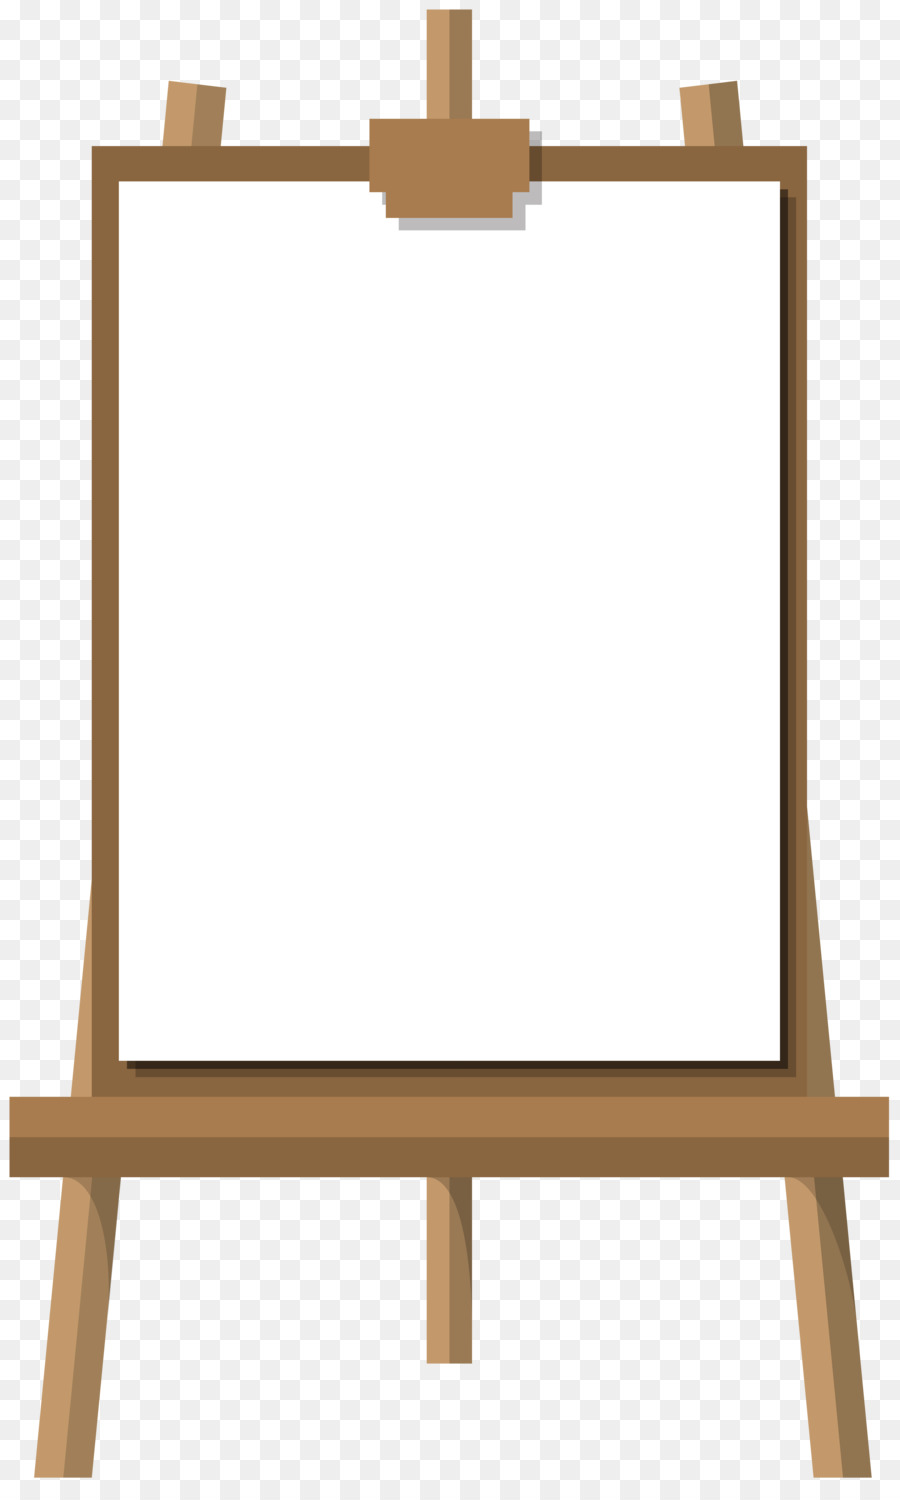 Free easel clipart clip art transparent download Wood Table Frame png download - 4852*8000 - Free Transparent Easel ... clip art transparent download